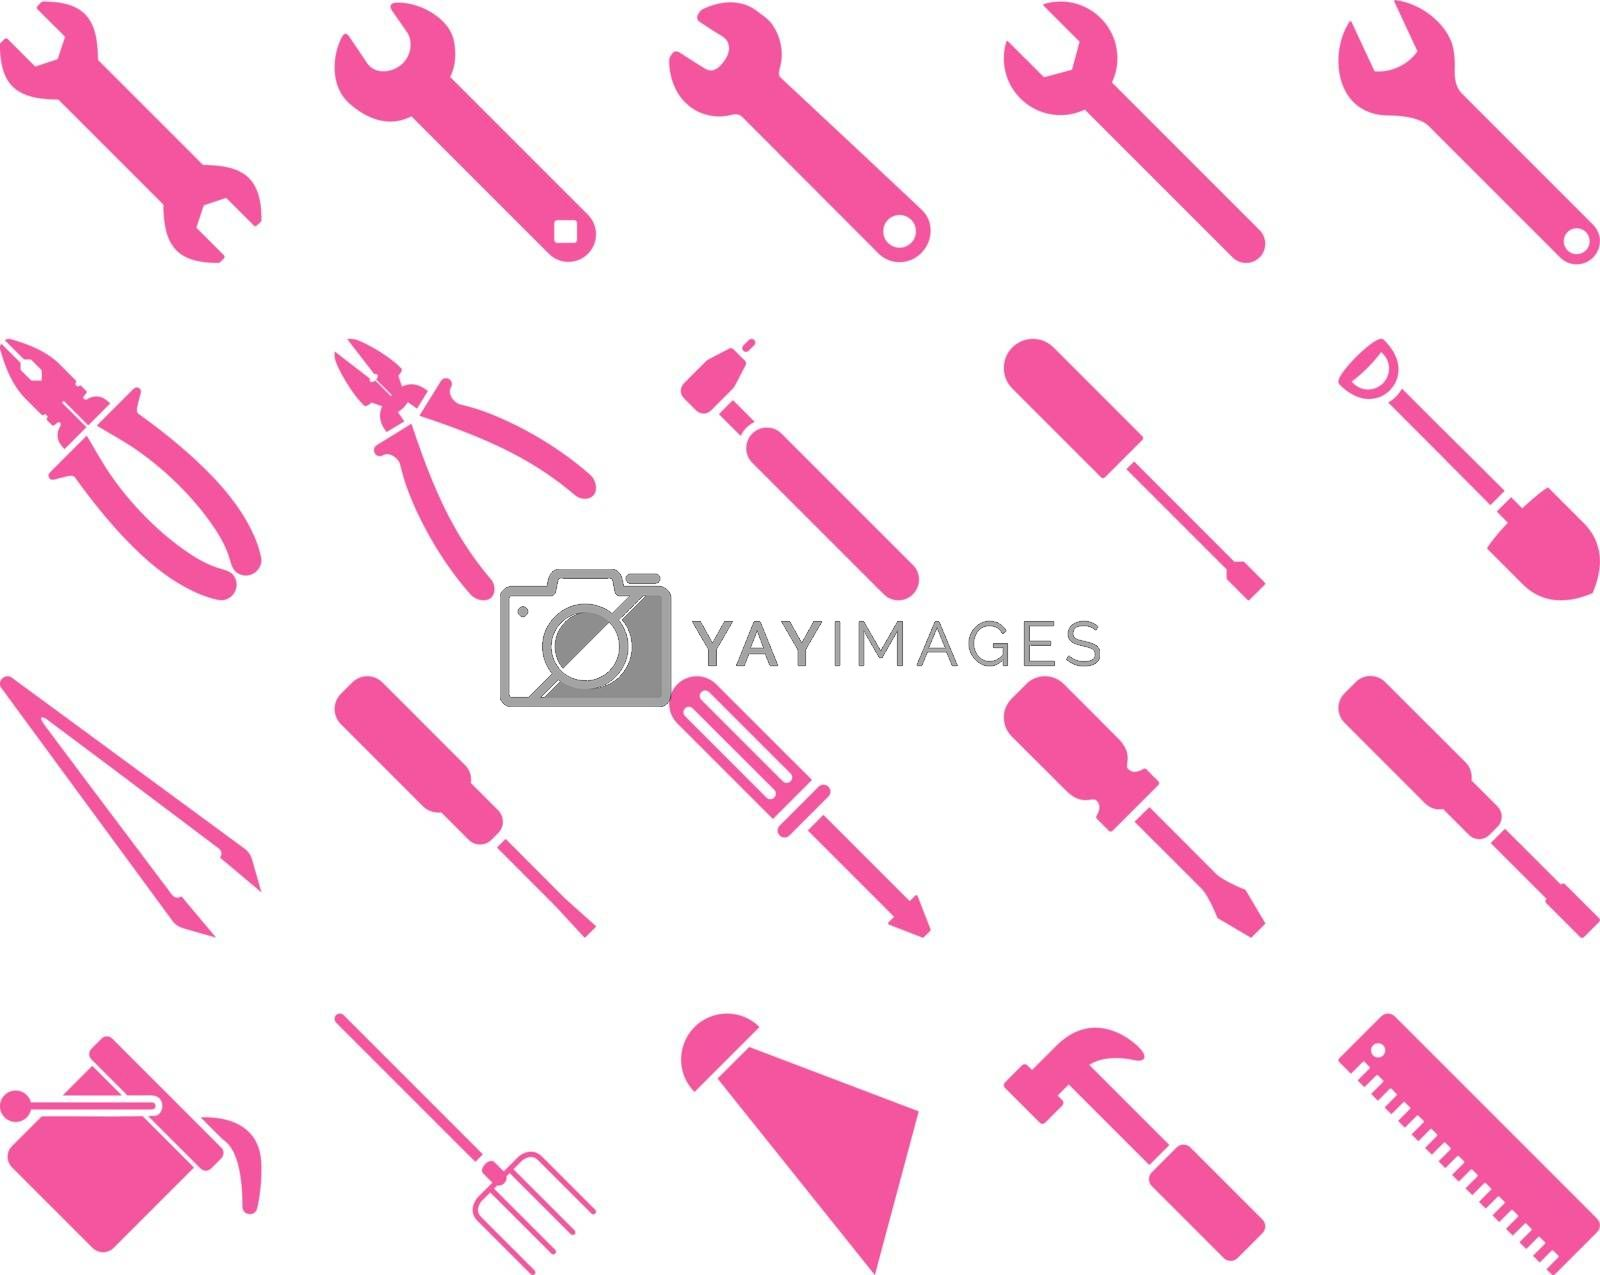 Equipment and Tools Icons. Vector set style is flat images, pink color, isolated on a white background.